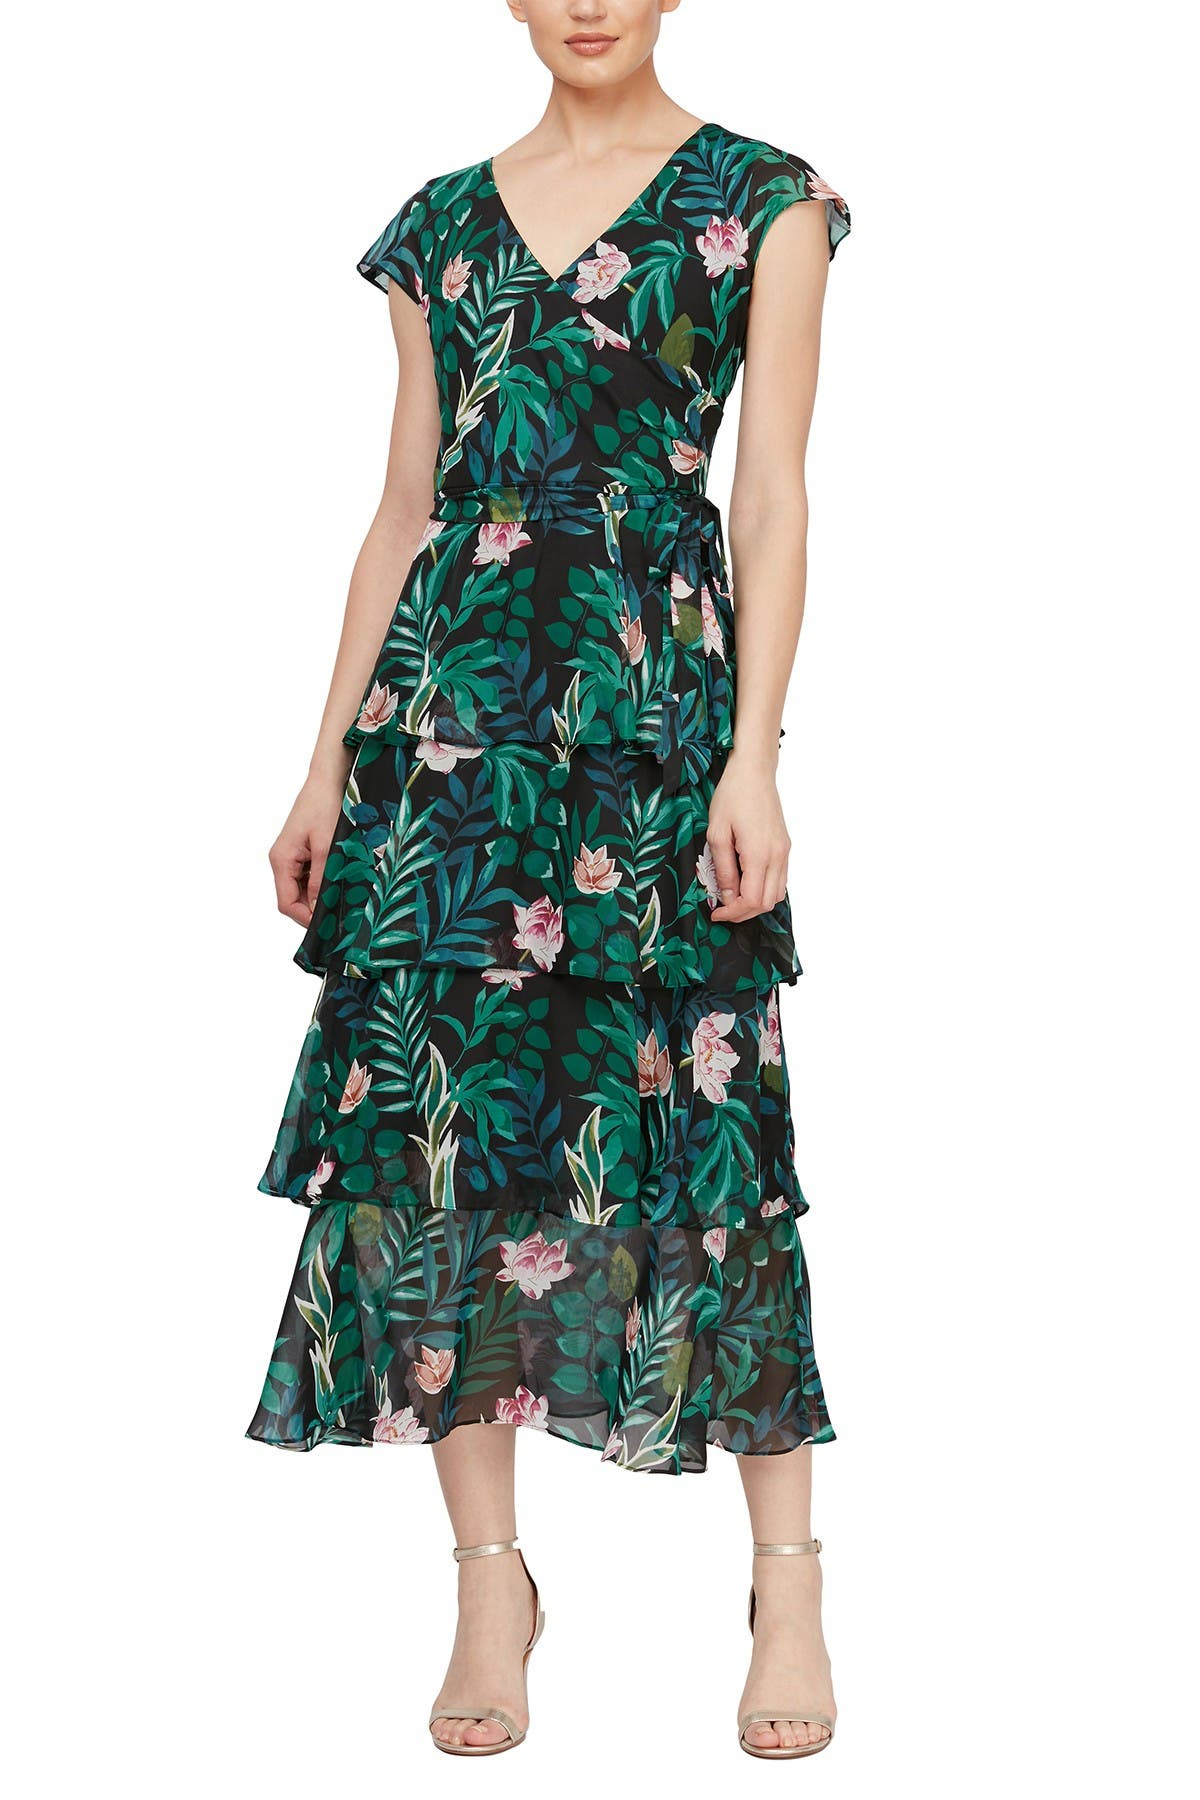 Image of SLNY Floral Tiered Ruffle Maxi Dress